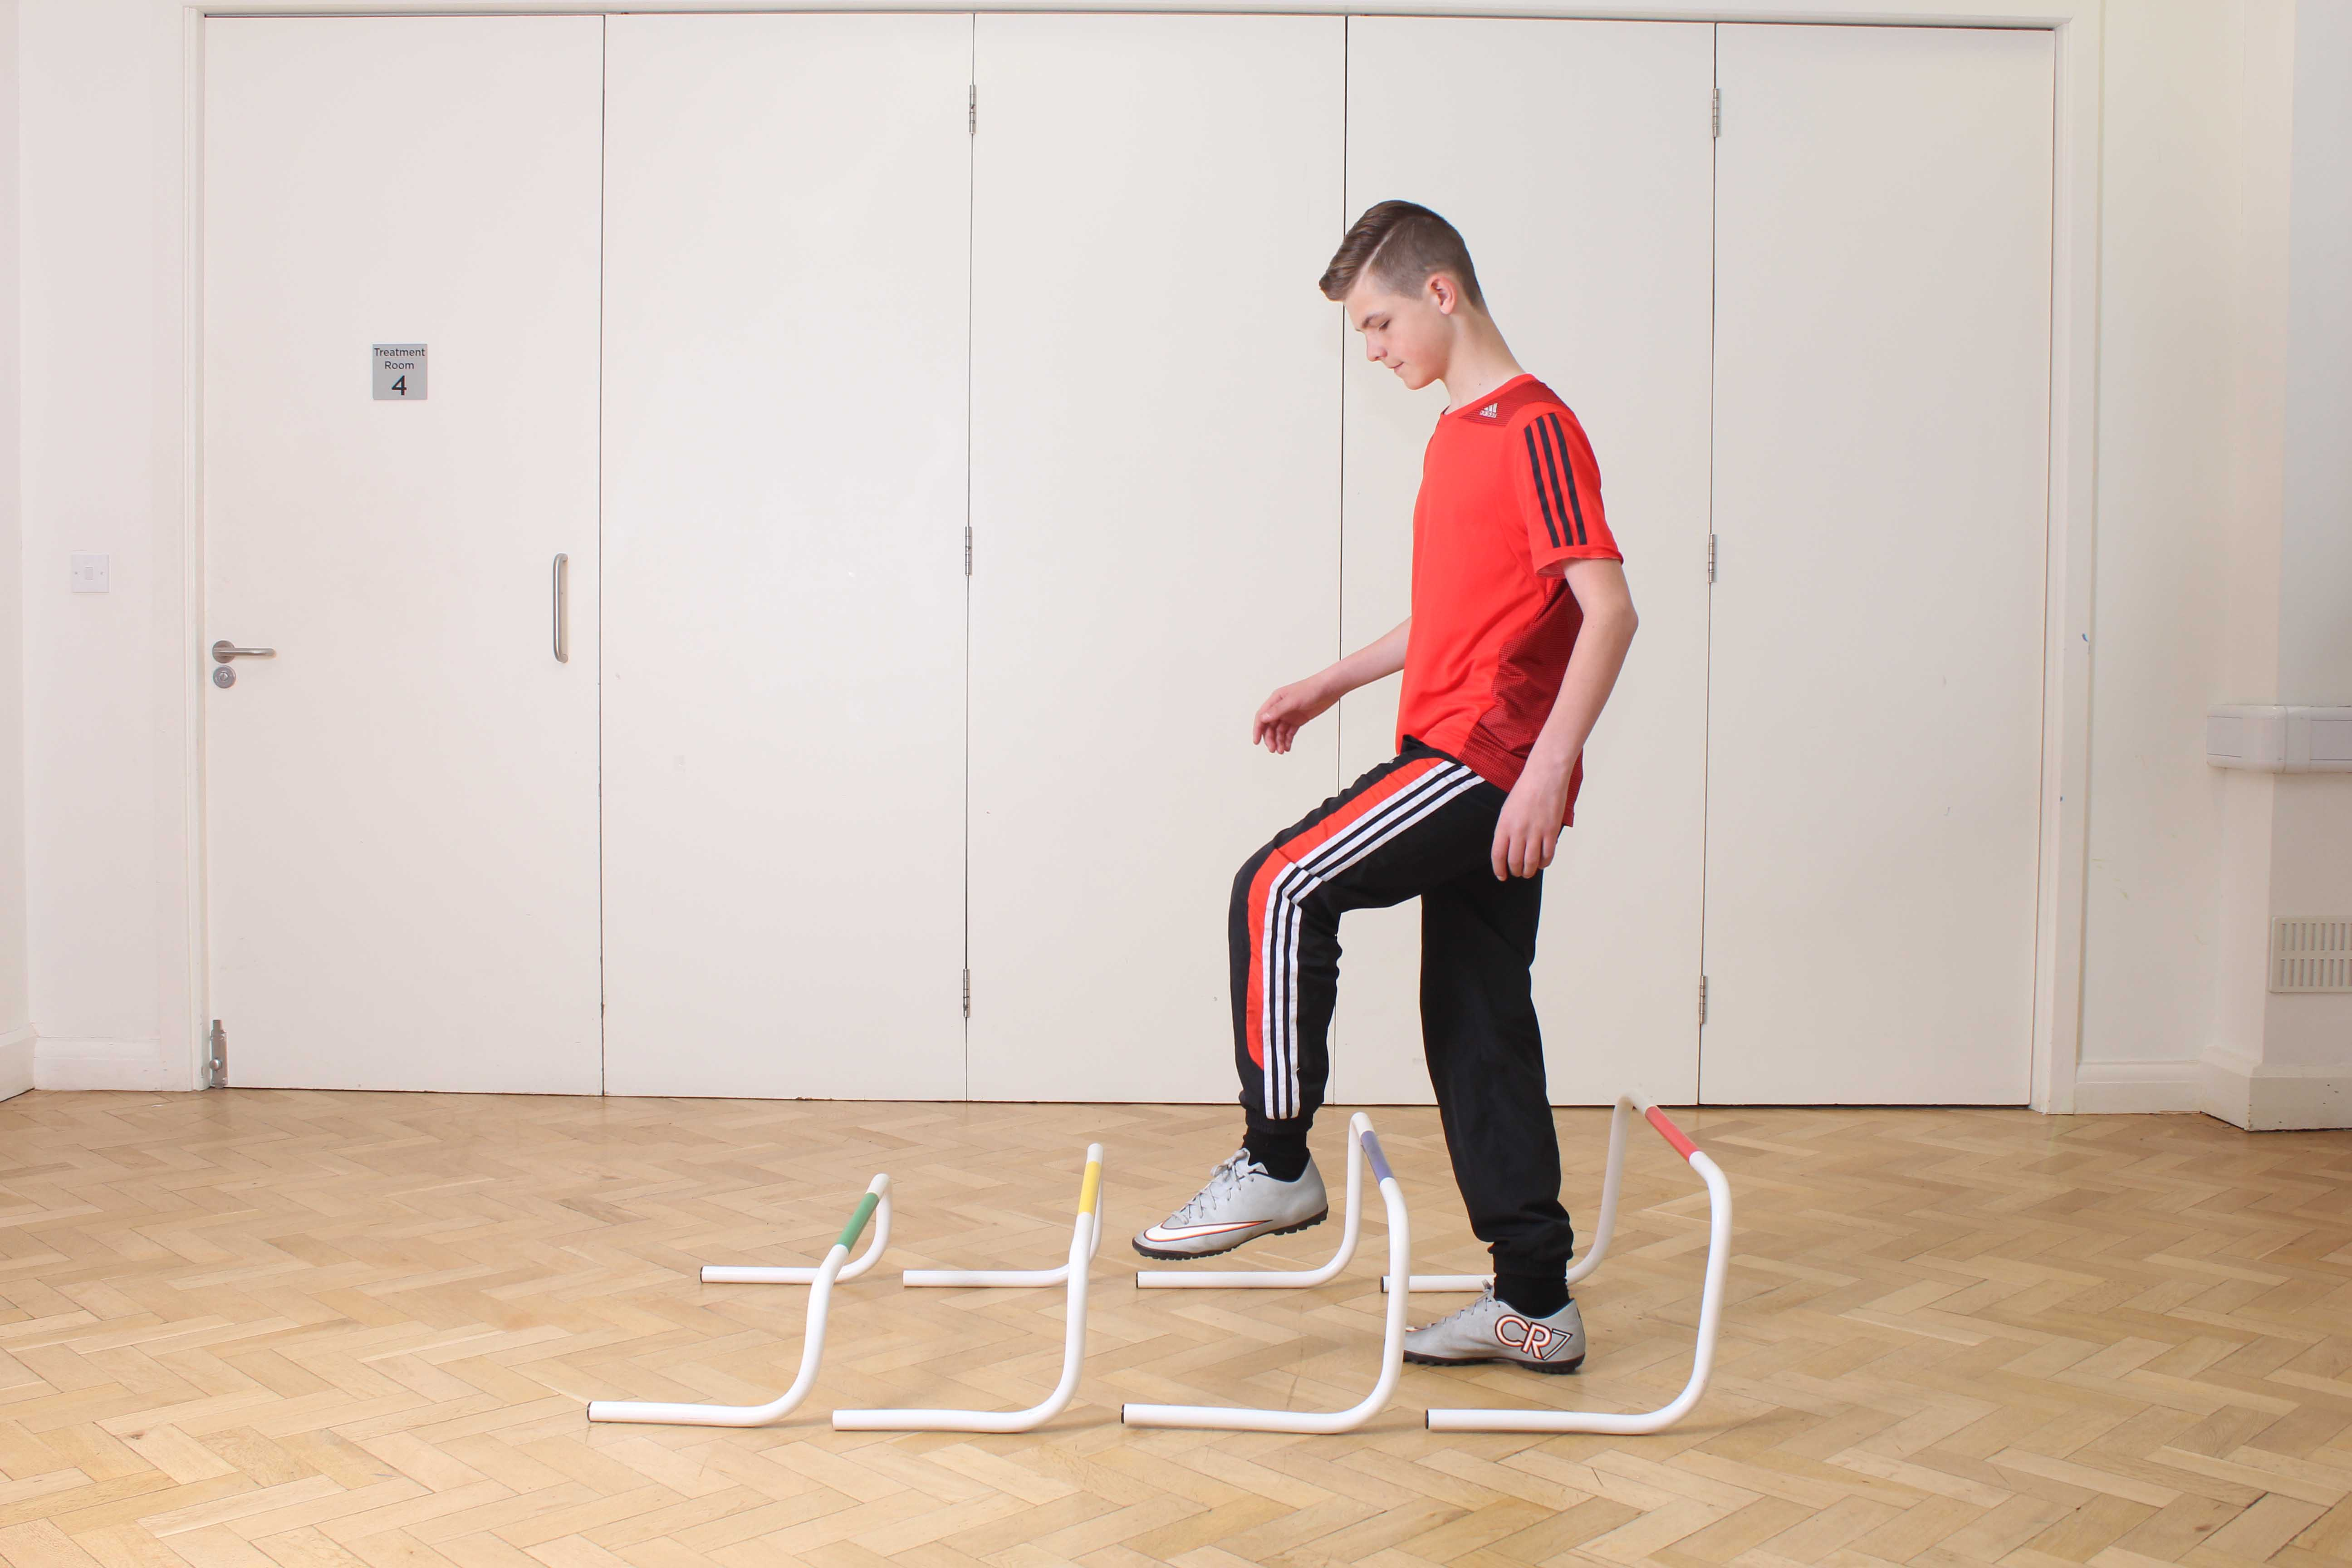 Gross motor function exercises designed to improve co-ordinated movement